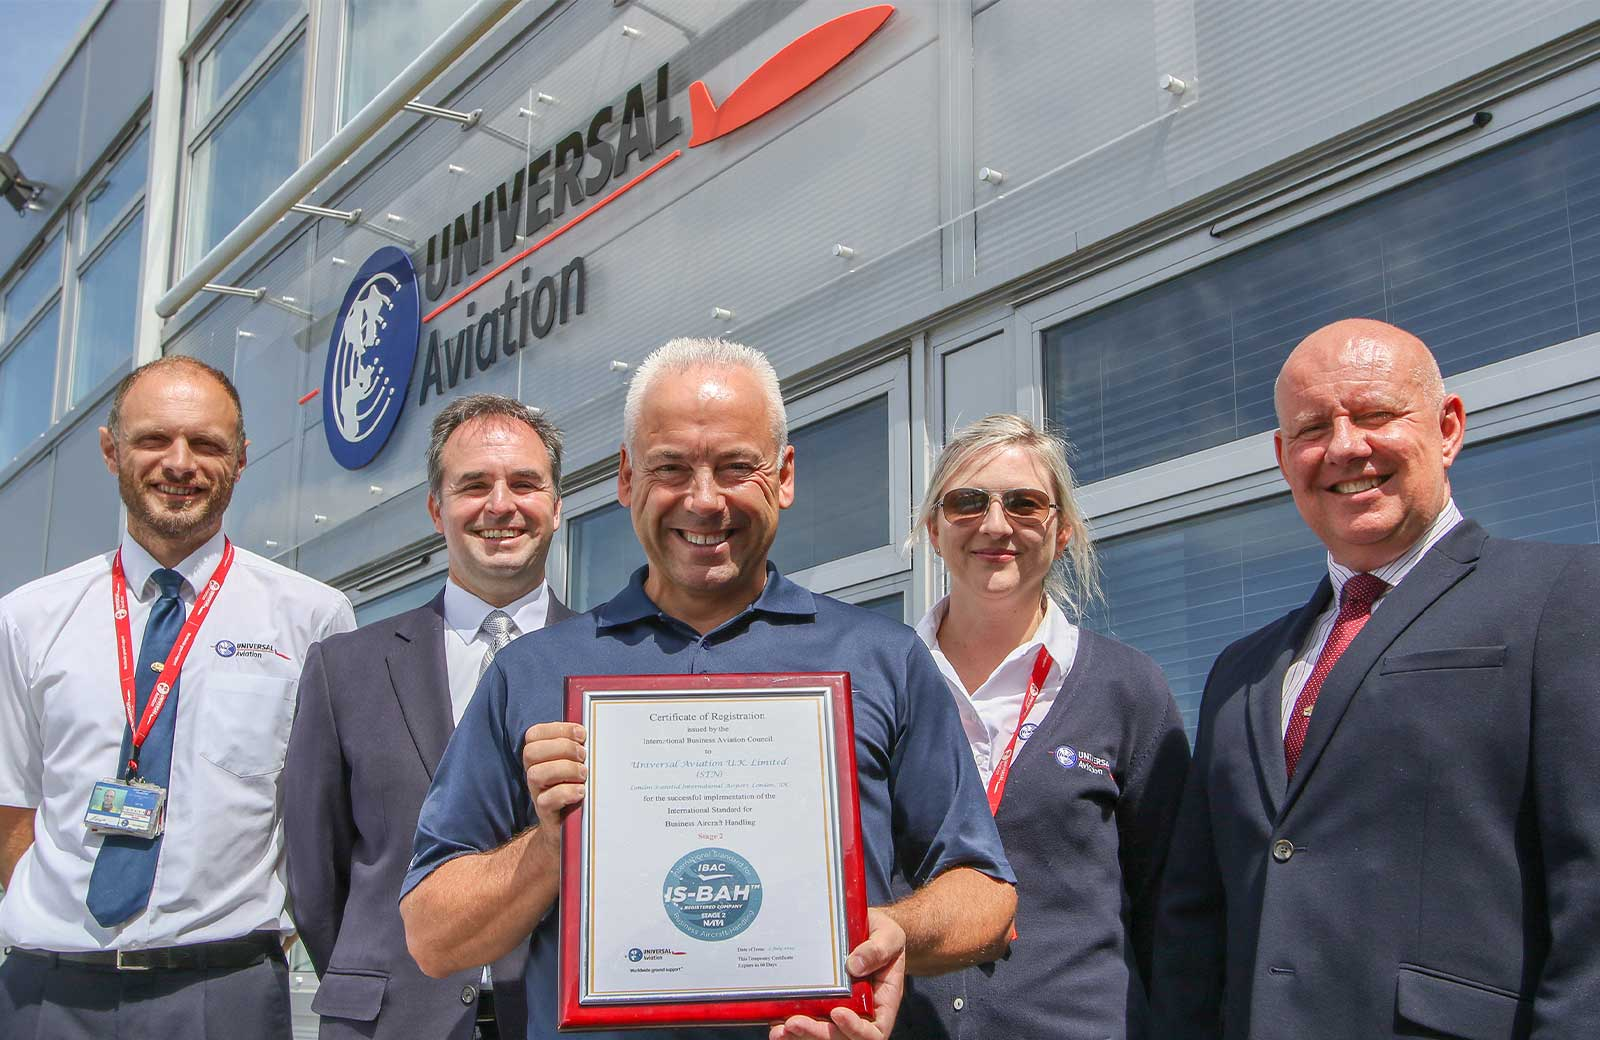 Universal Aviation UK, based at London-Stansted International Airport (EGSS) has earned Stage 2 registration under the International Standard for Business Aviation Handling (IS-BAH).